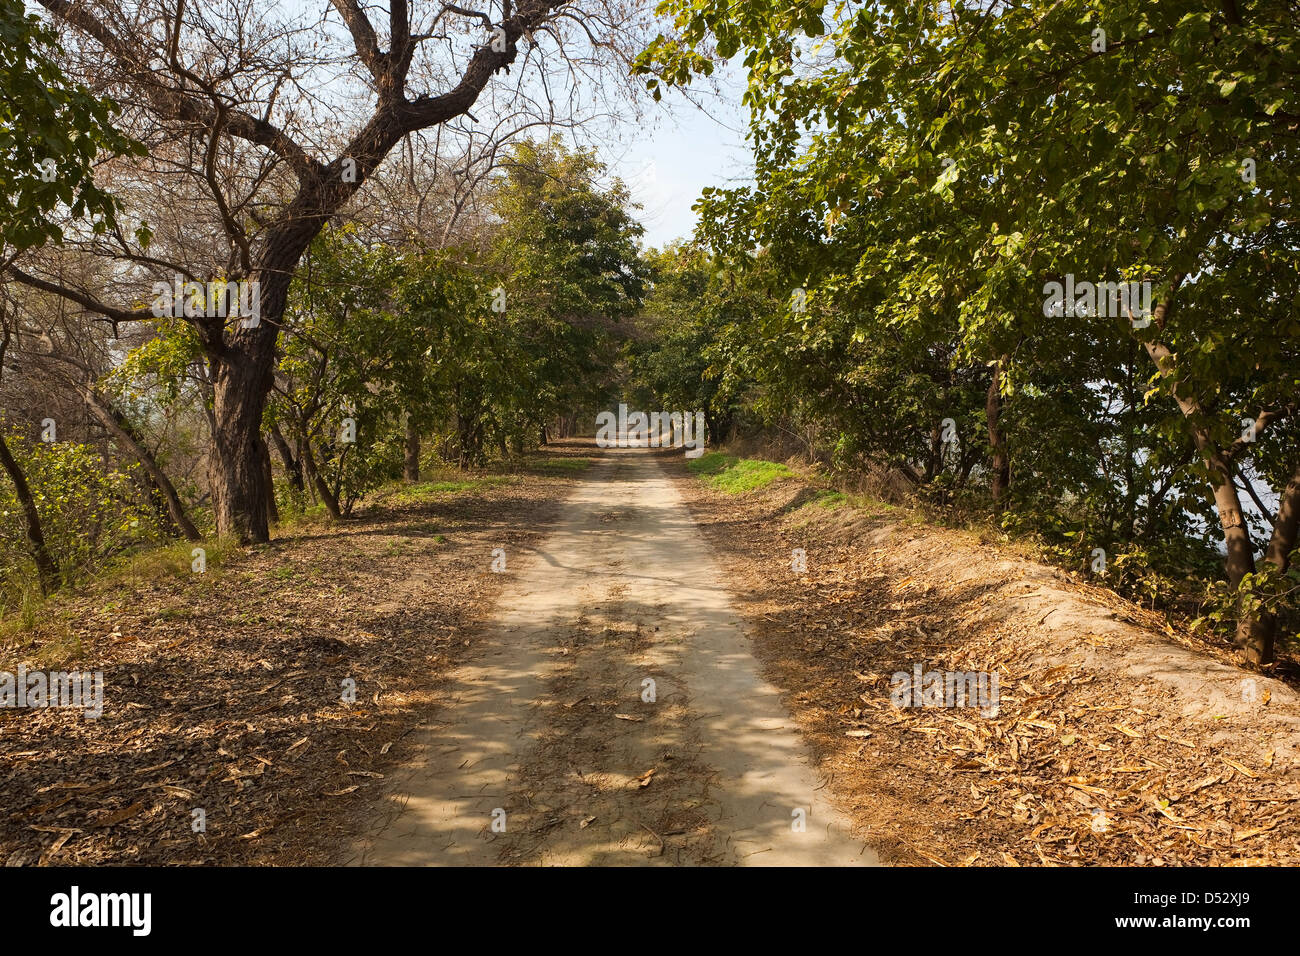 A tree lined dusty track in Harike wetlands and nature reserve in the Punjab India on a sunny day - Stock Image